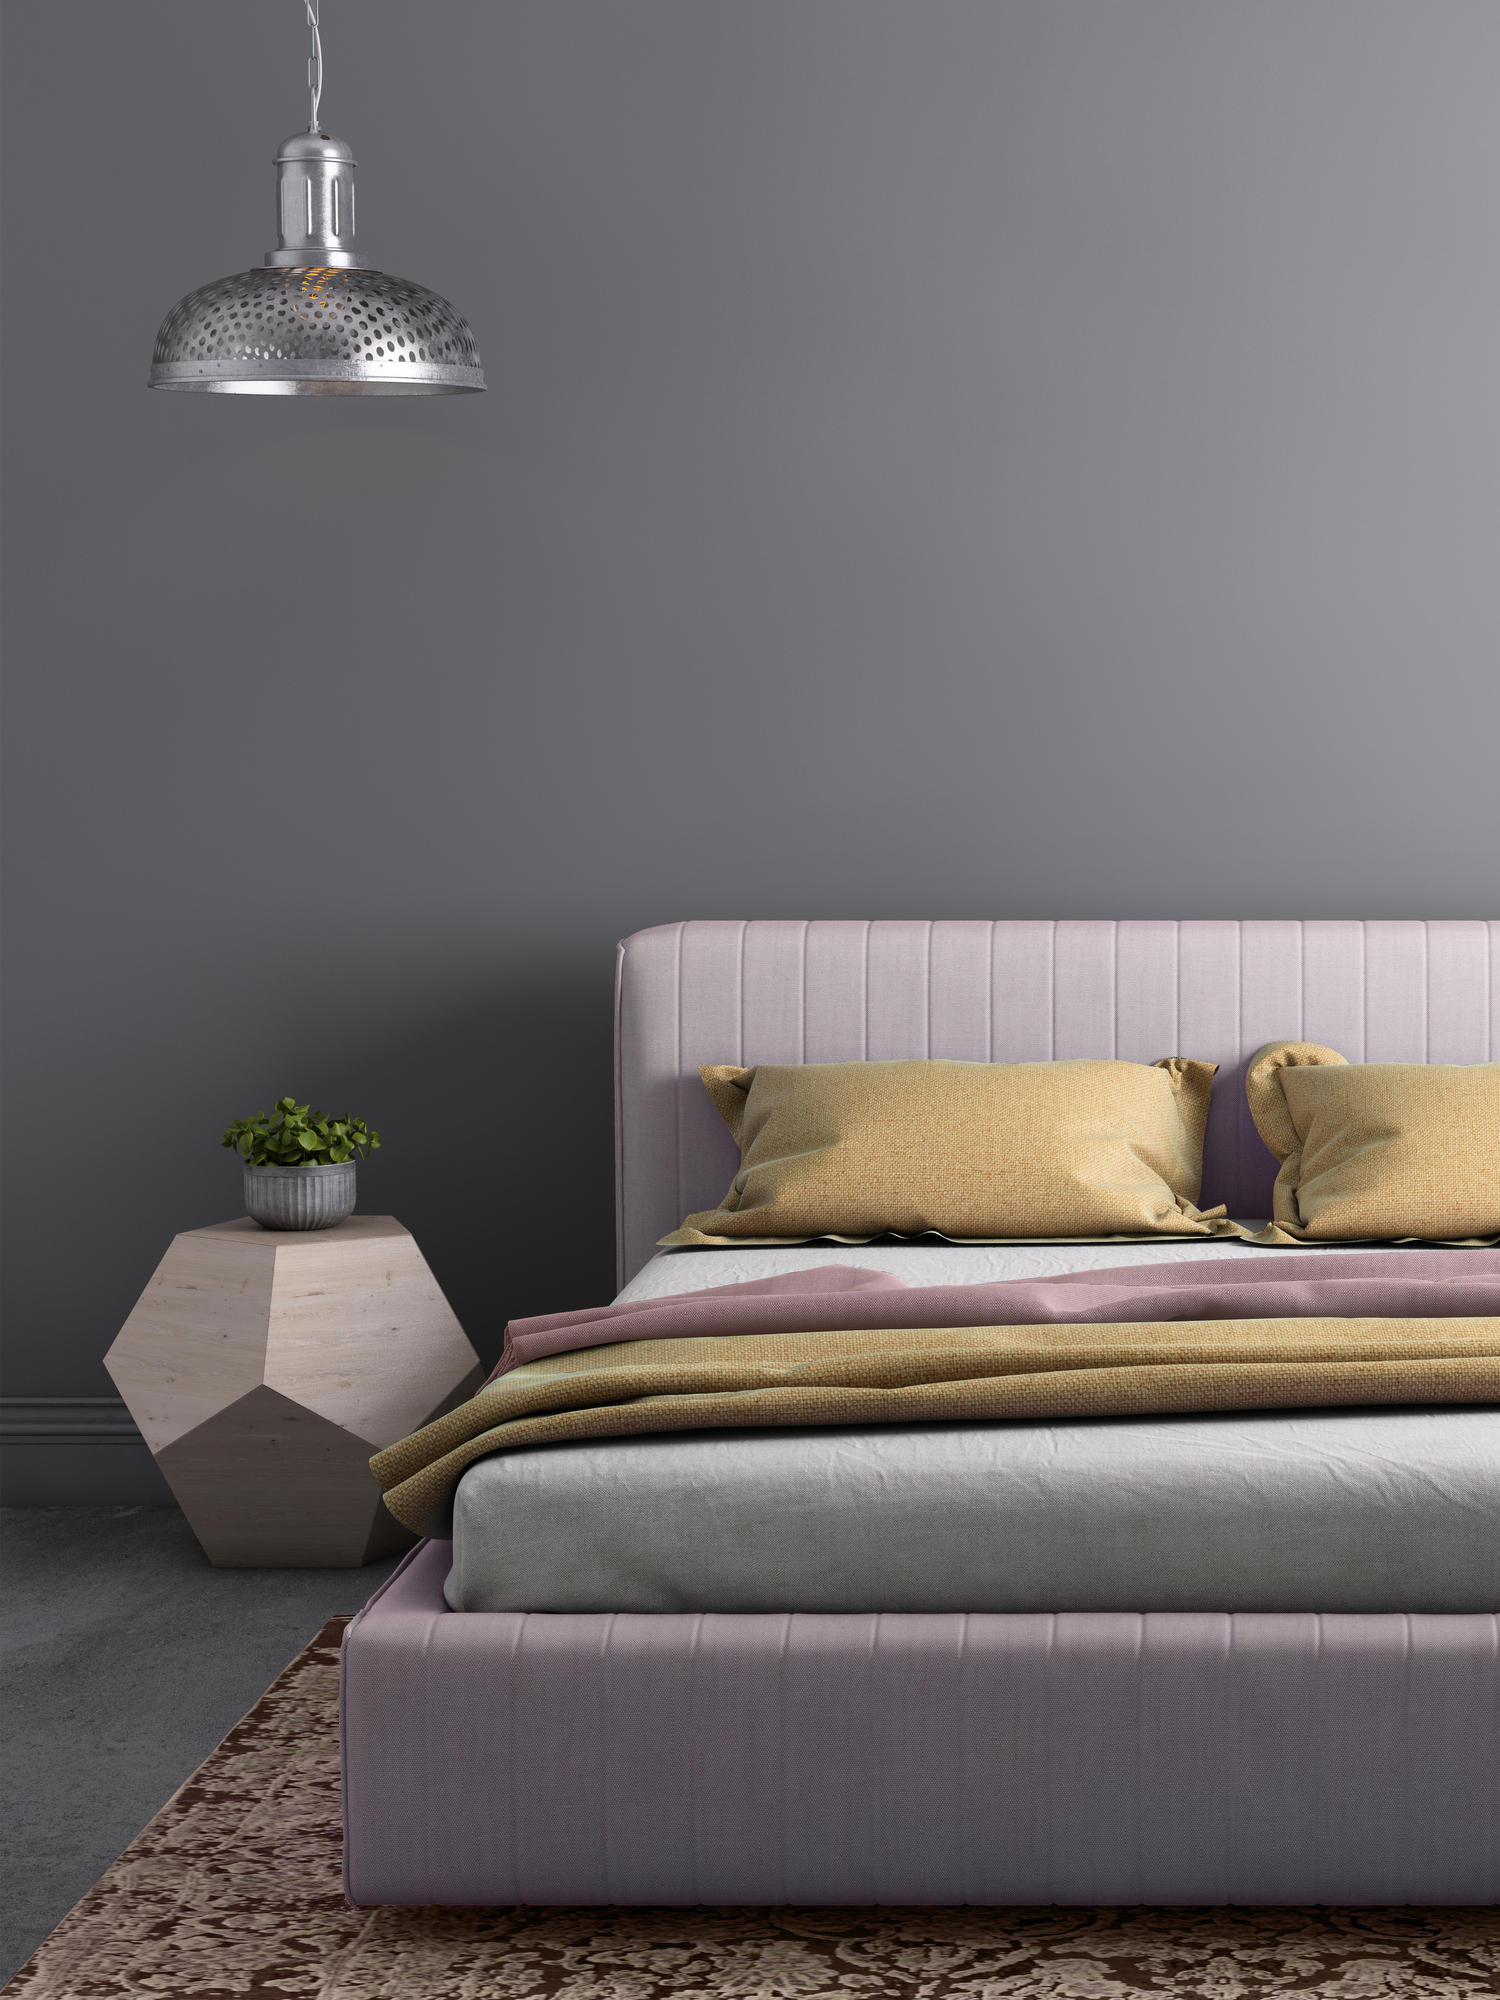 Inspiring Headboard Ideas For Every Type Of Bedroom Real Simple